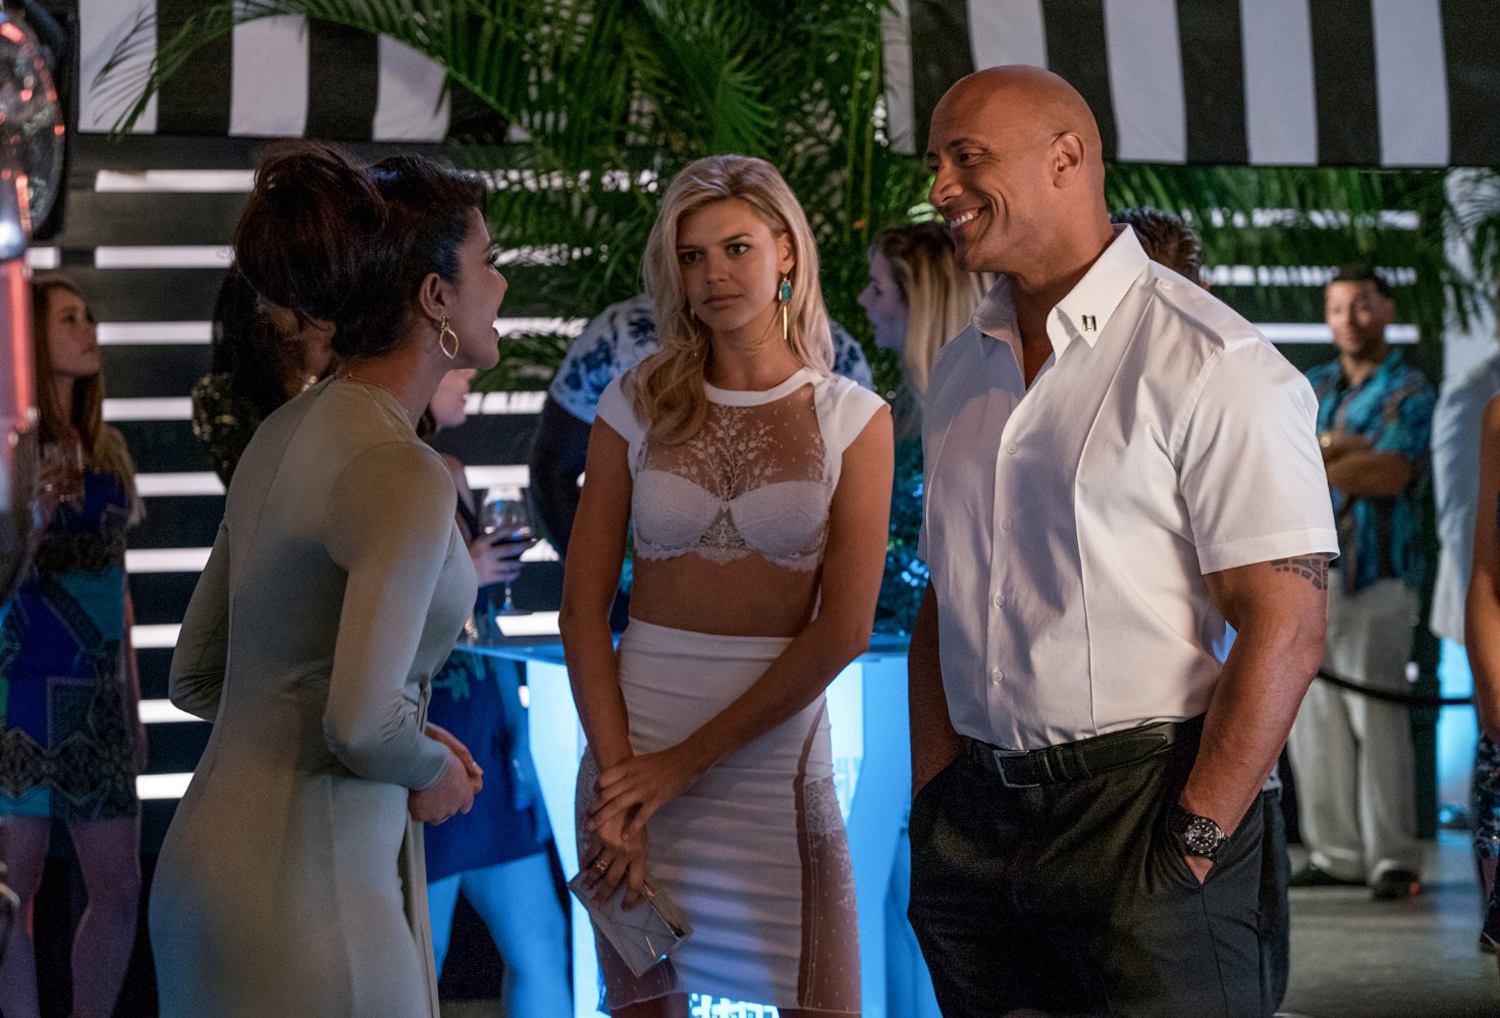 Kelly Rohrbach, Priyanka Chopra, Dwayne 'The Rock' Johnson